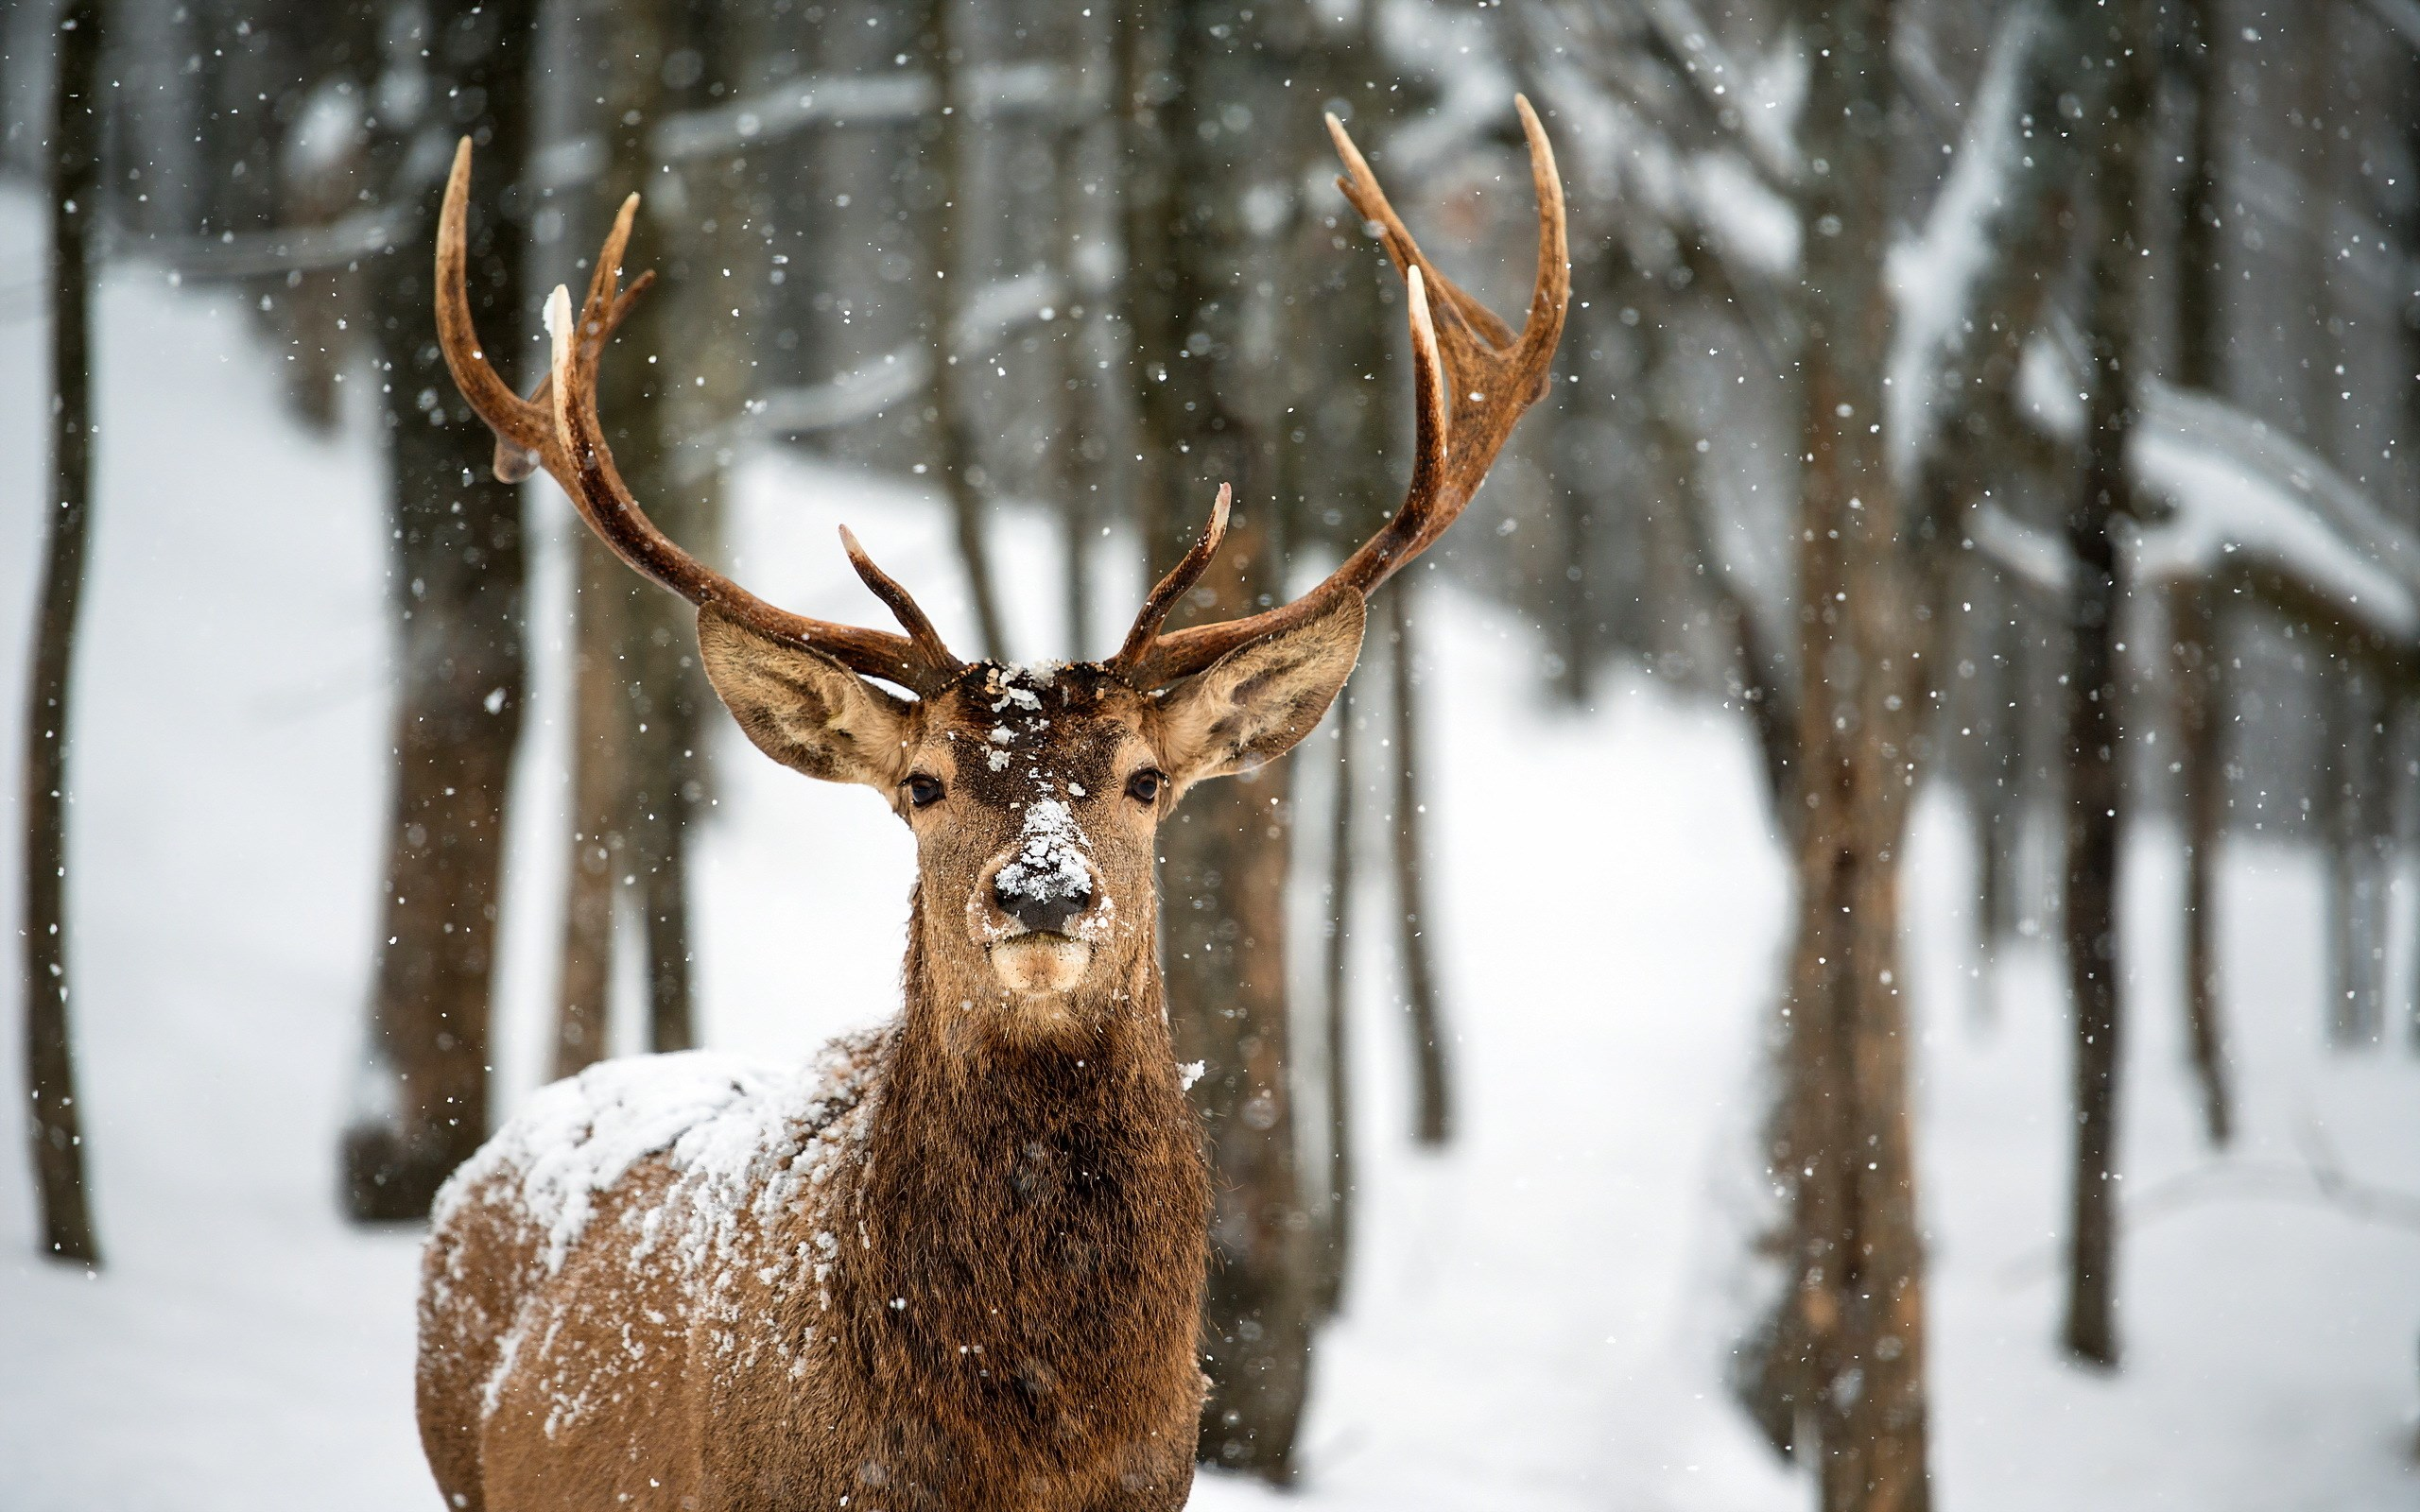 7009413-deer-snow-winter-forest